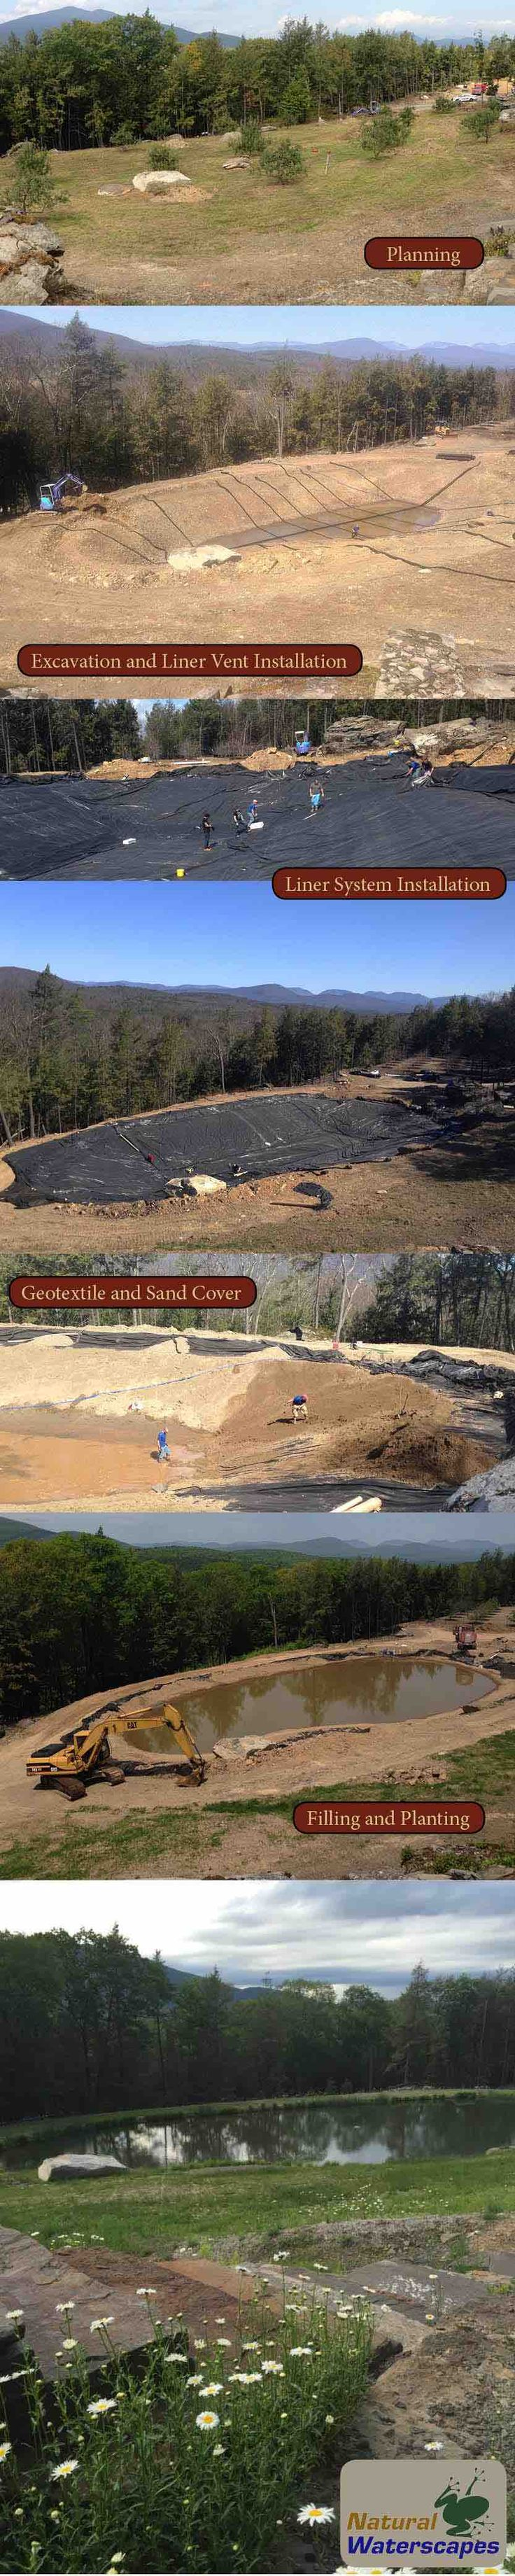 Large Pond Liner Installation on a complex site.  This pond system includes a complete sub-surface filtration and recirculation system with skimmers and bottom intakes to maintain water quality.